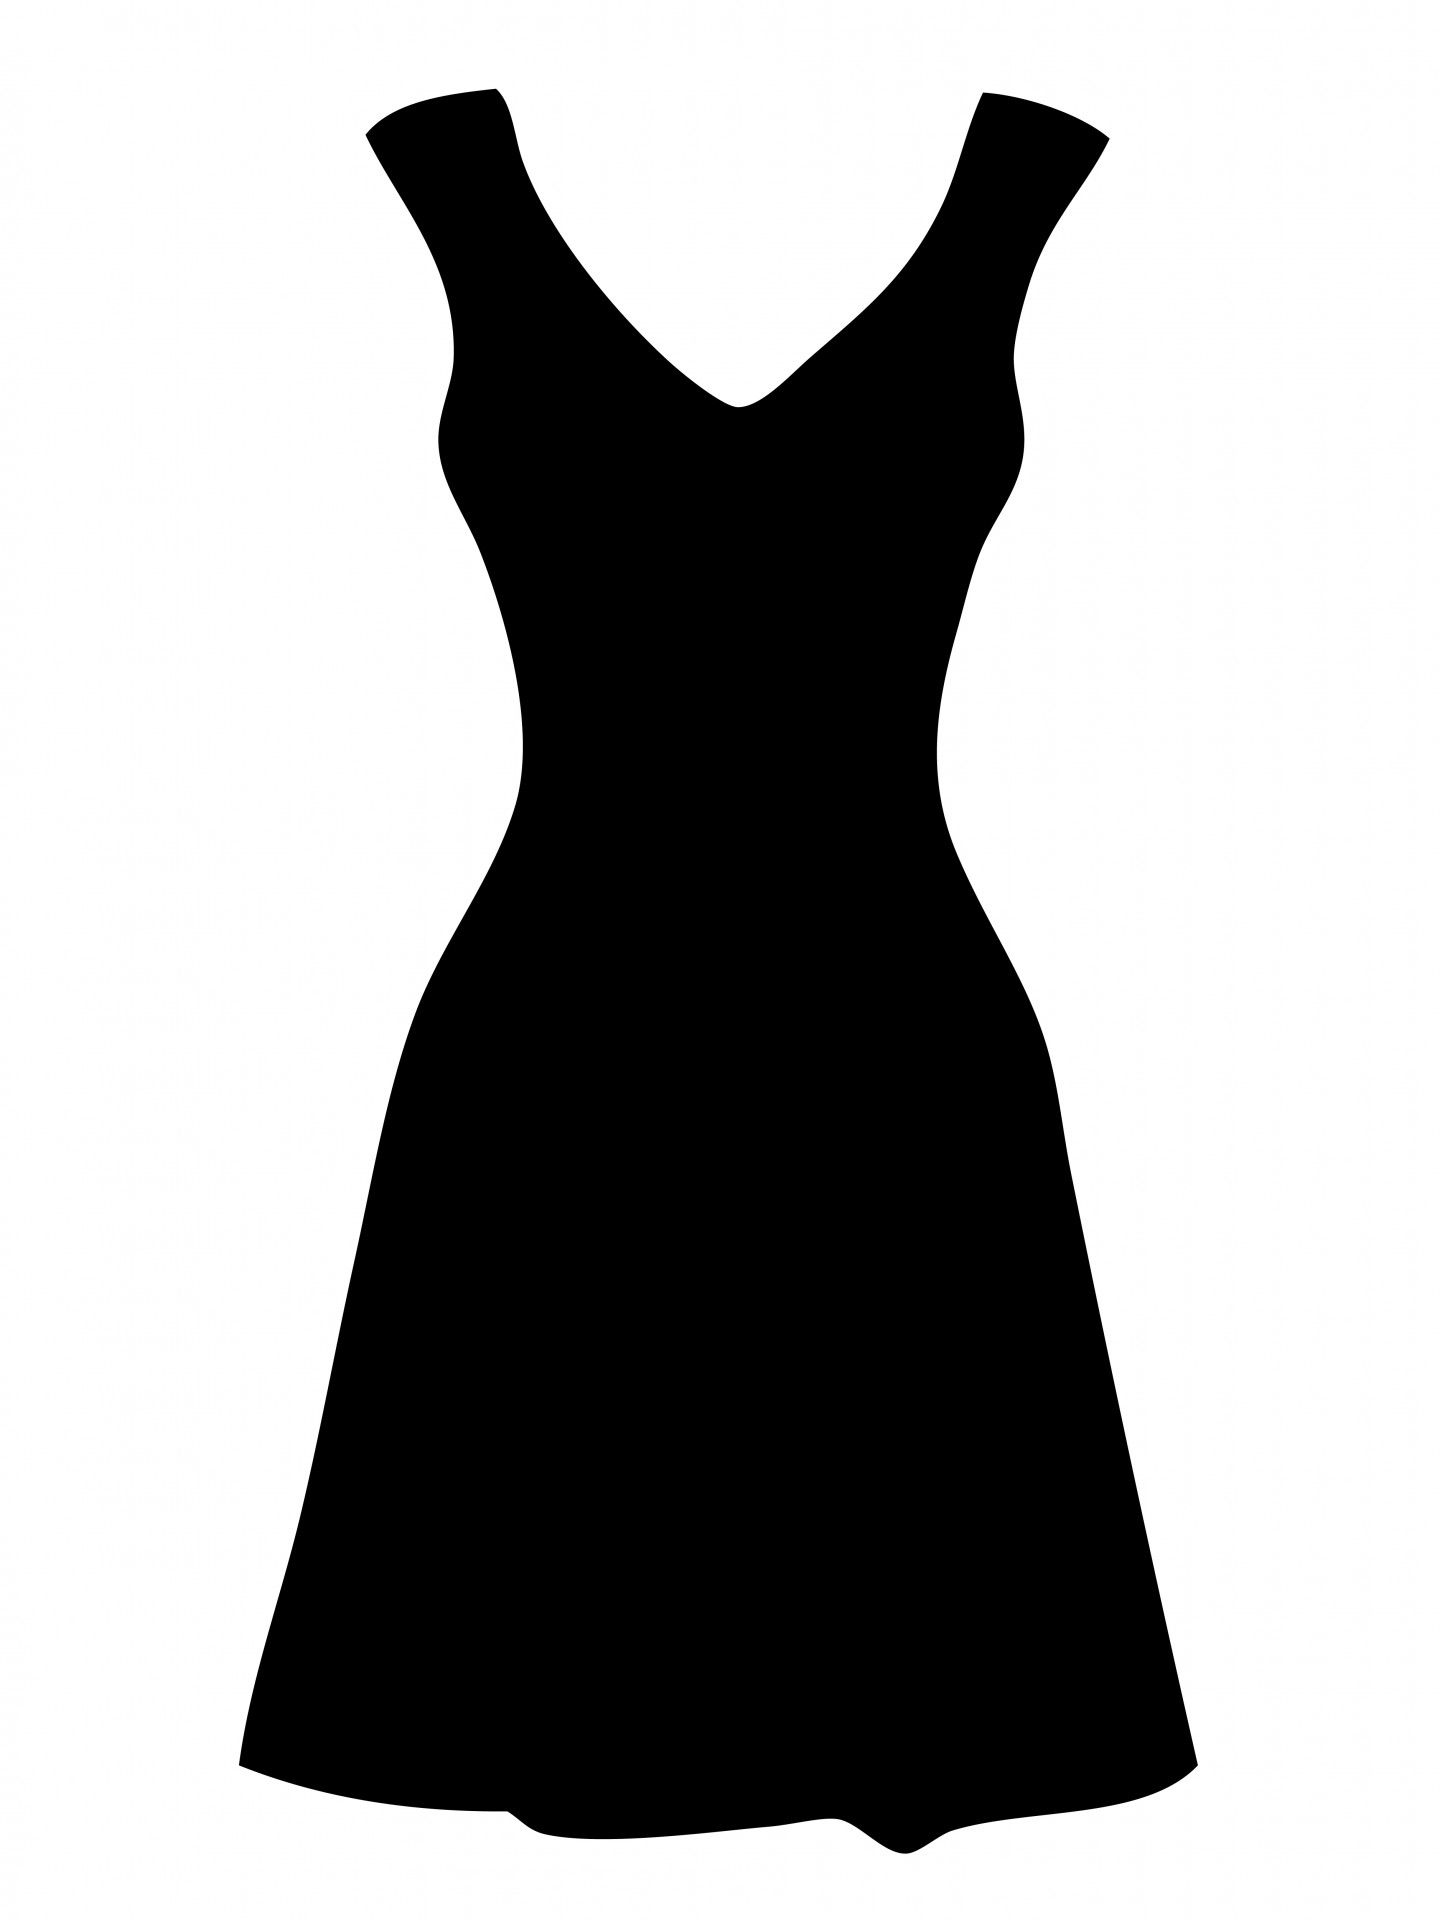 Free of dresses black. Dress clipart